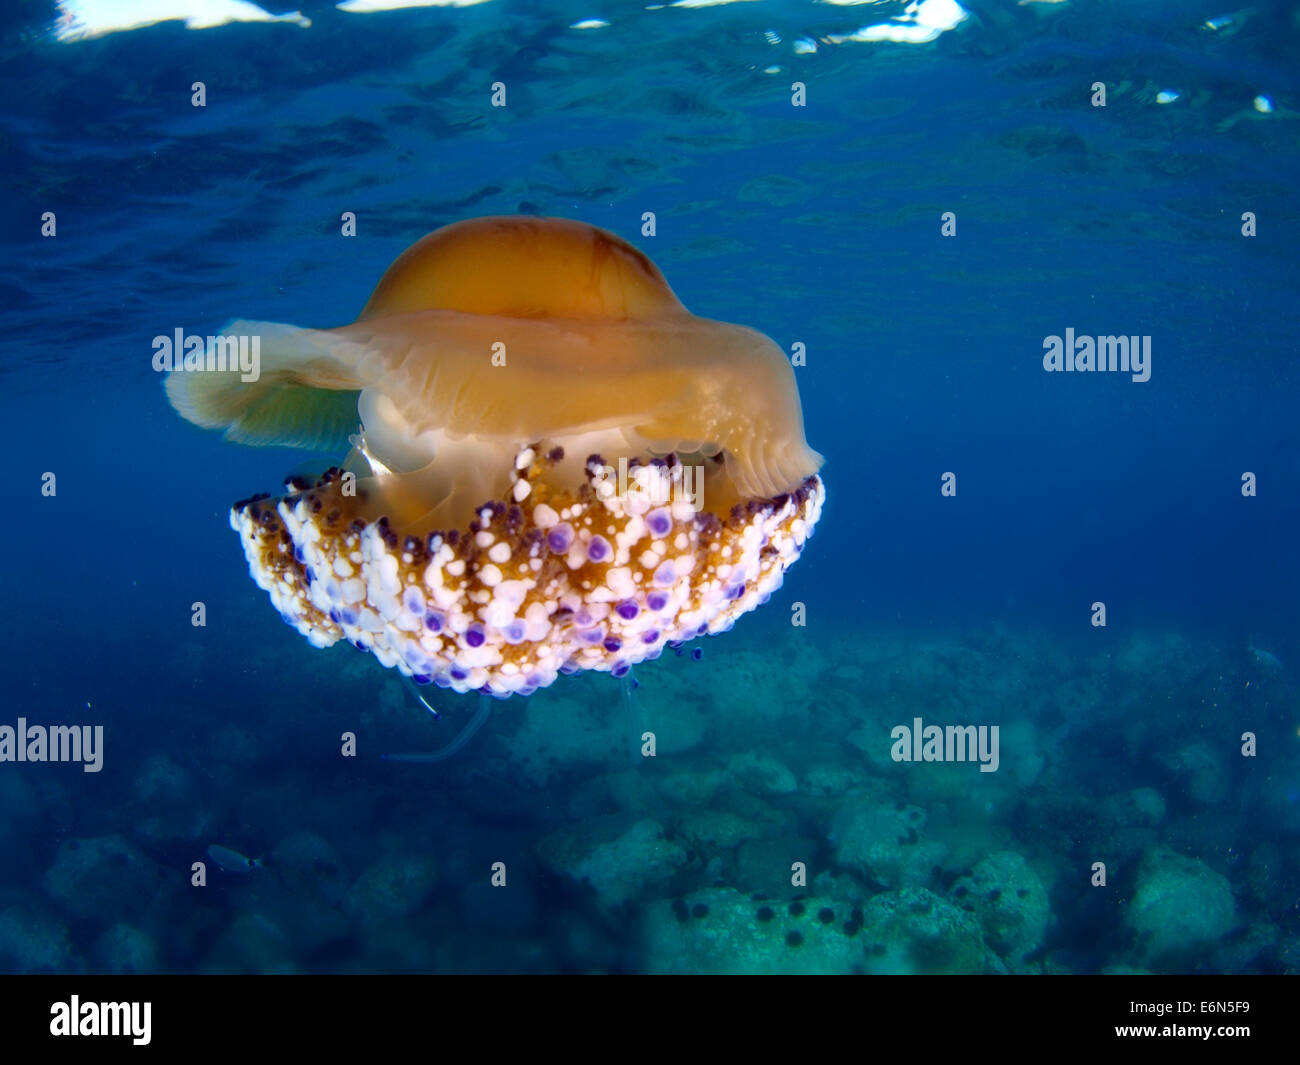 A jellyfish floats in the clear waters of the Mediterranean sea (Spain) - Stock Image